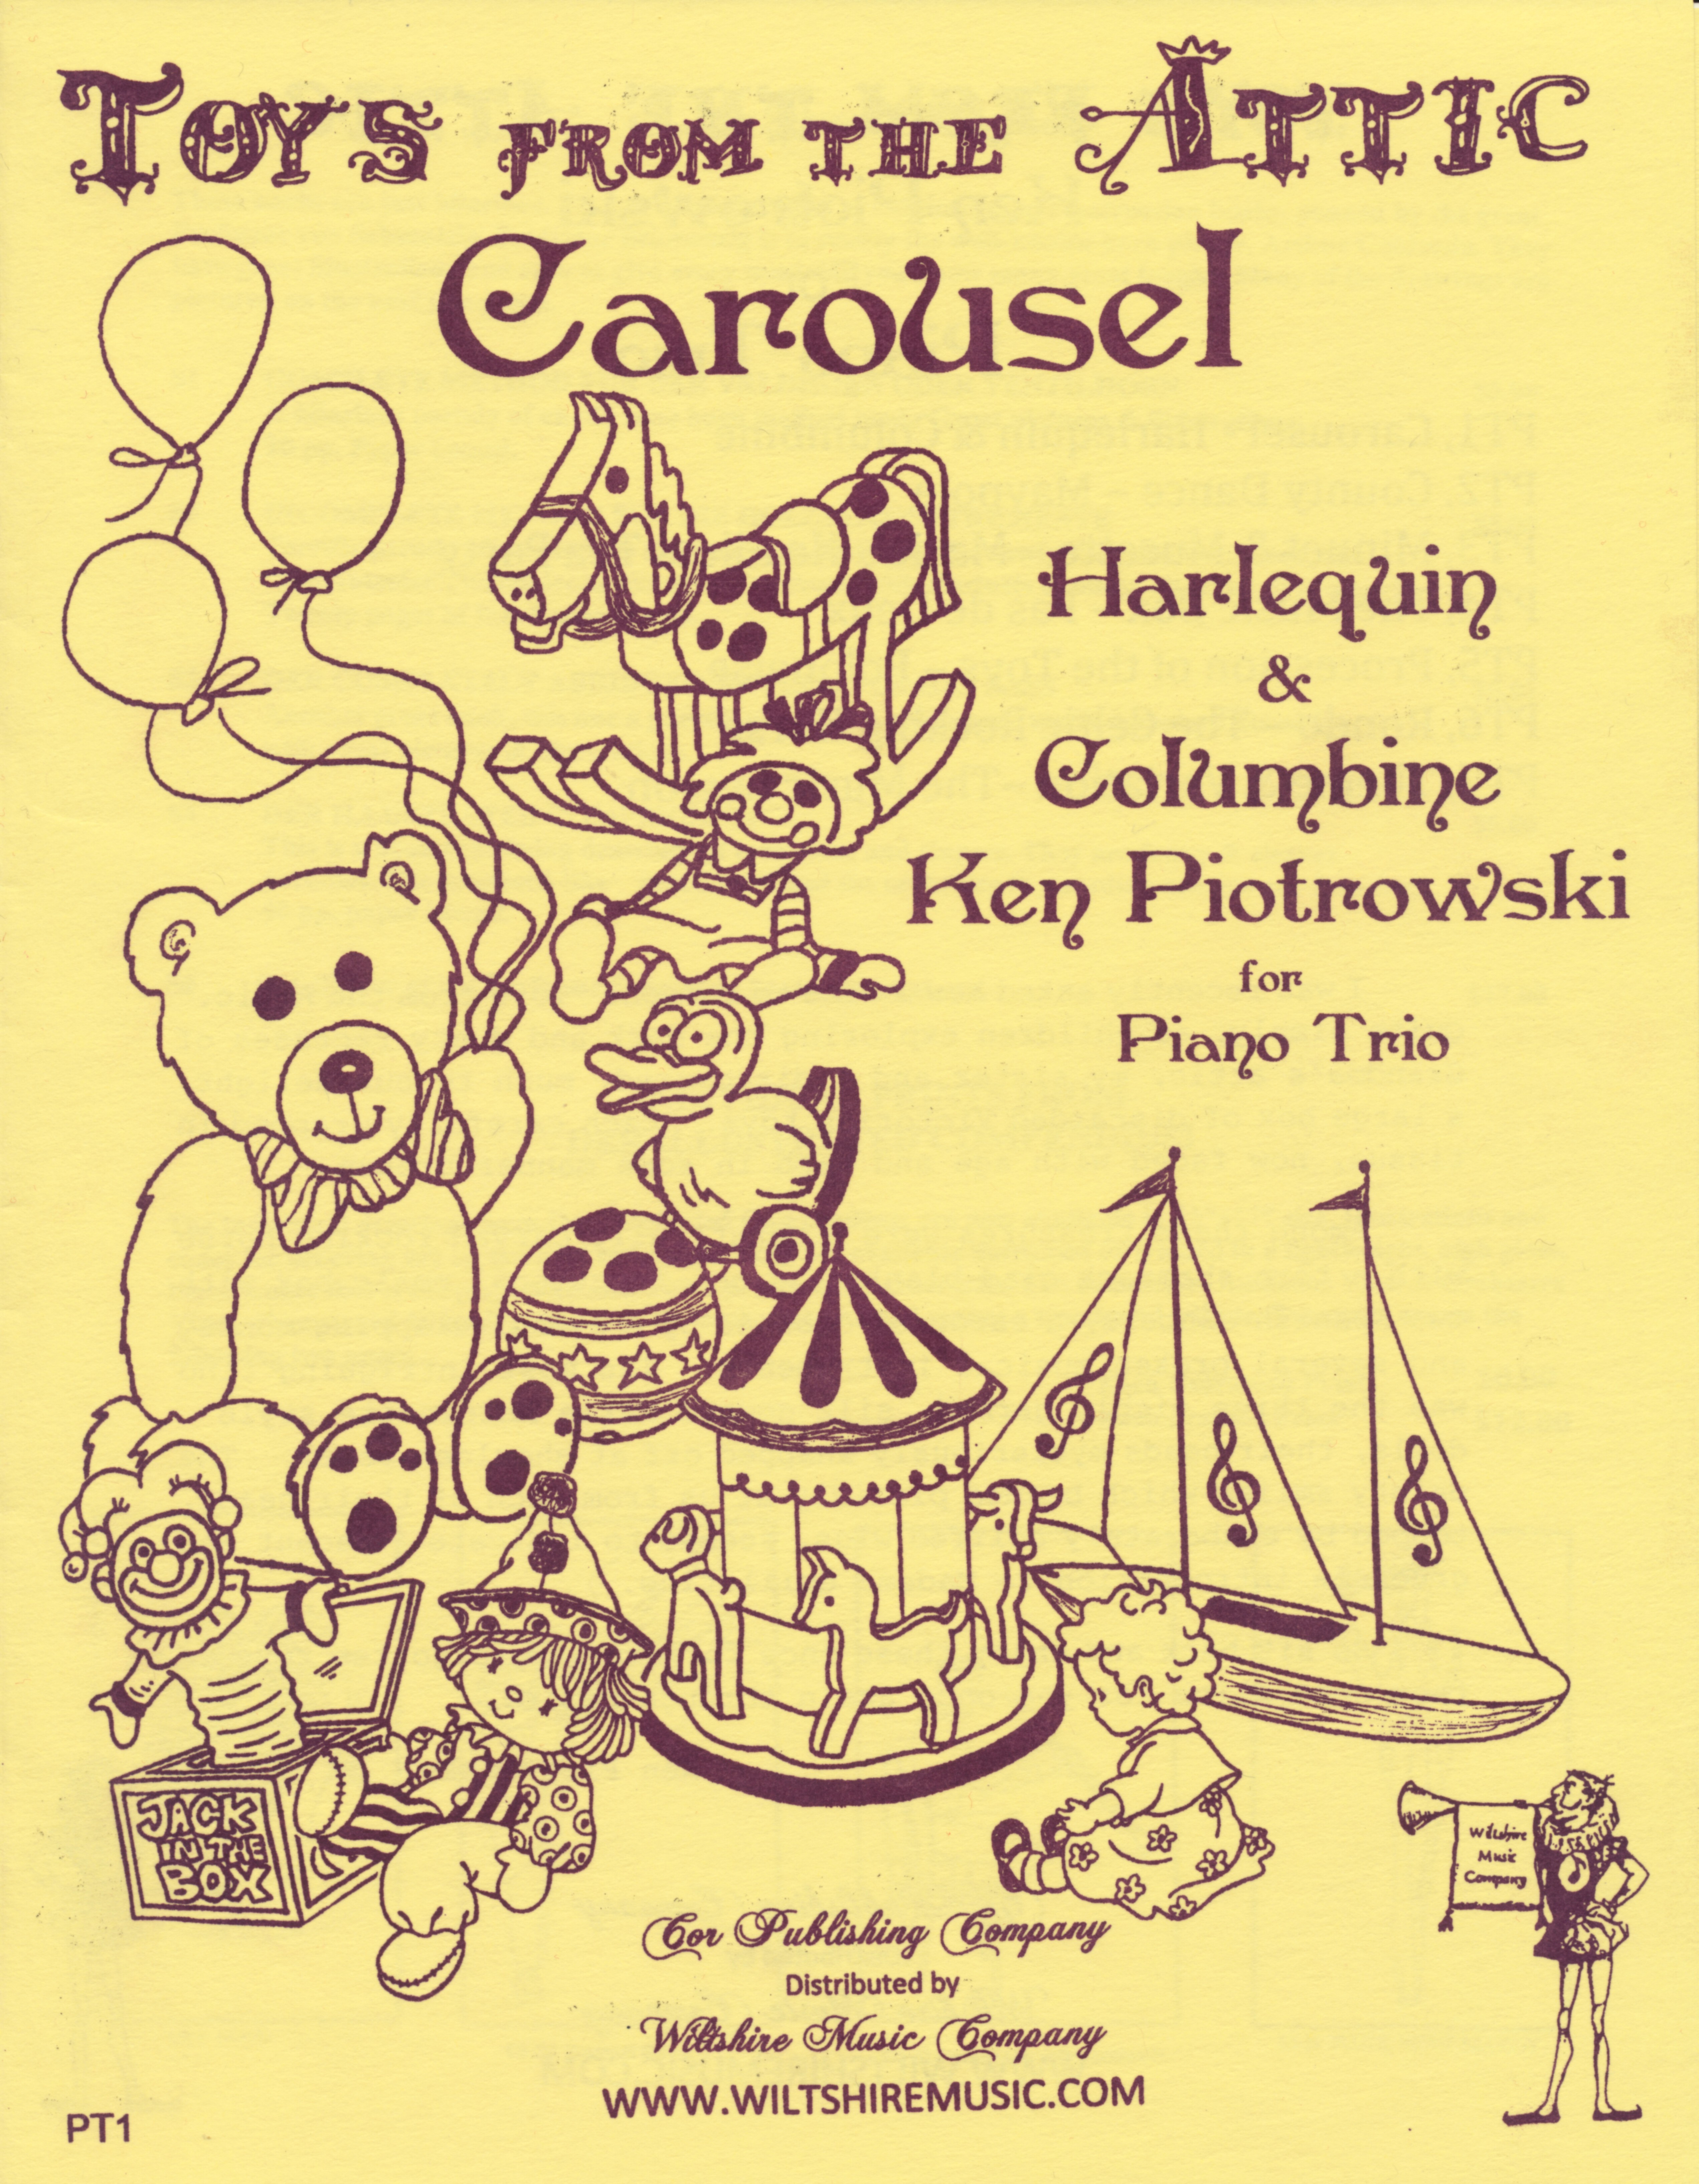 Carousel, Harlequin & Columbine, Ken Piotrowski for Piano Trio